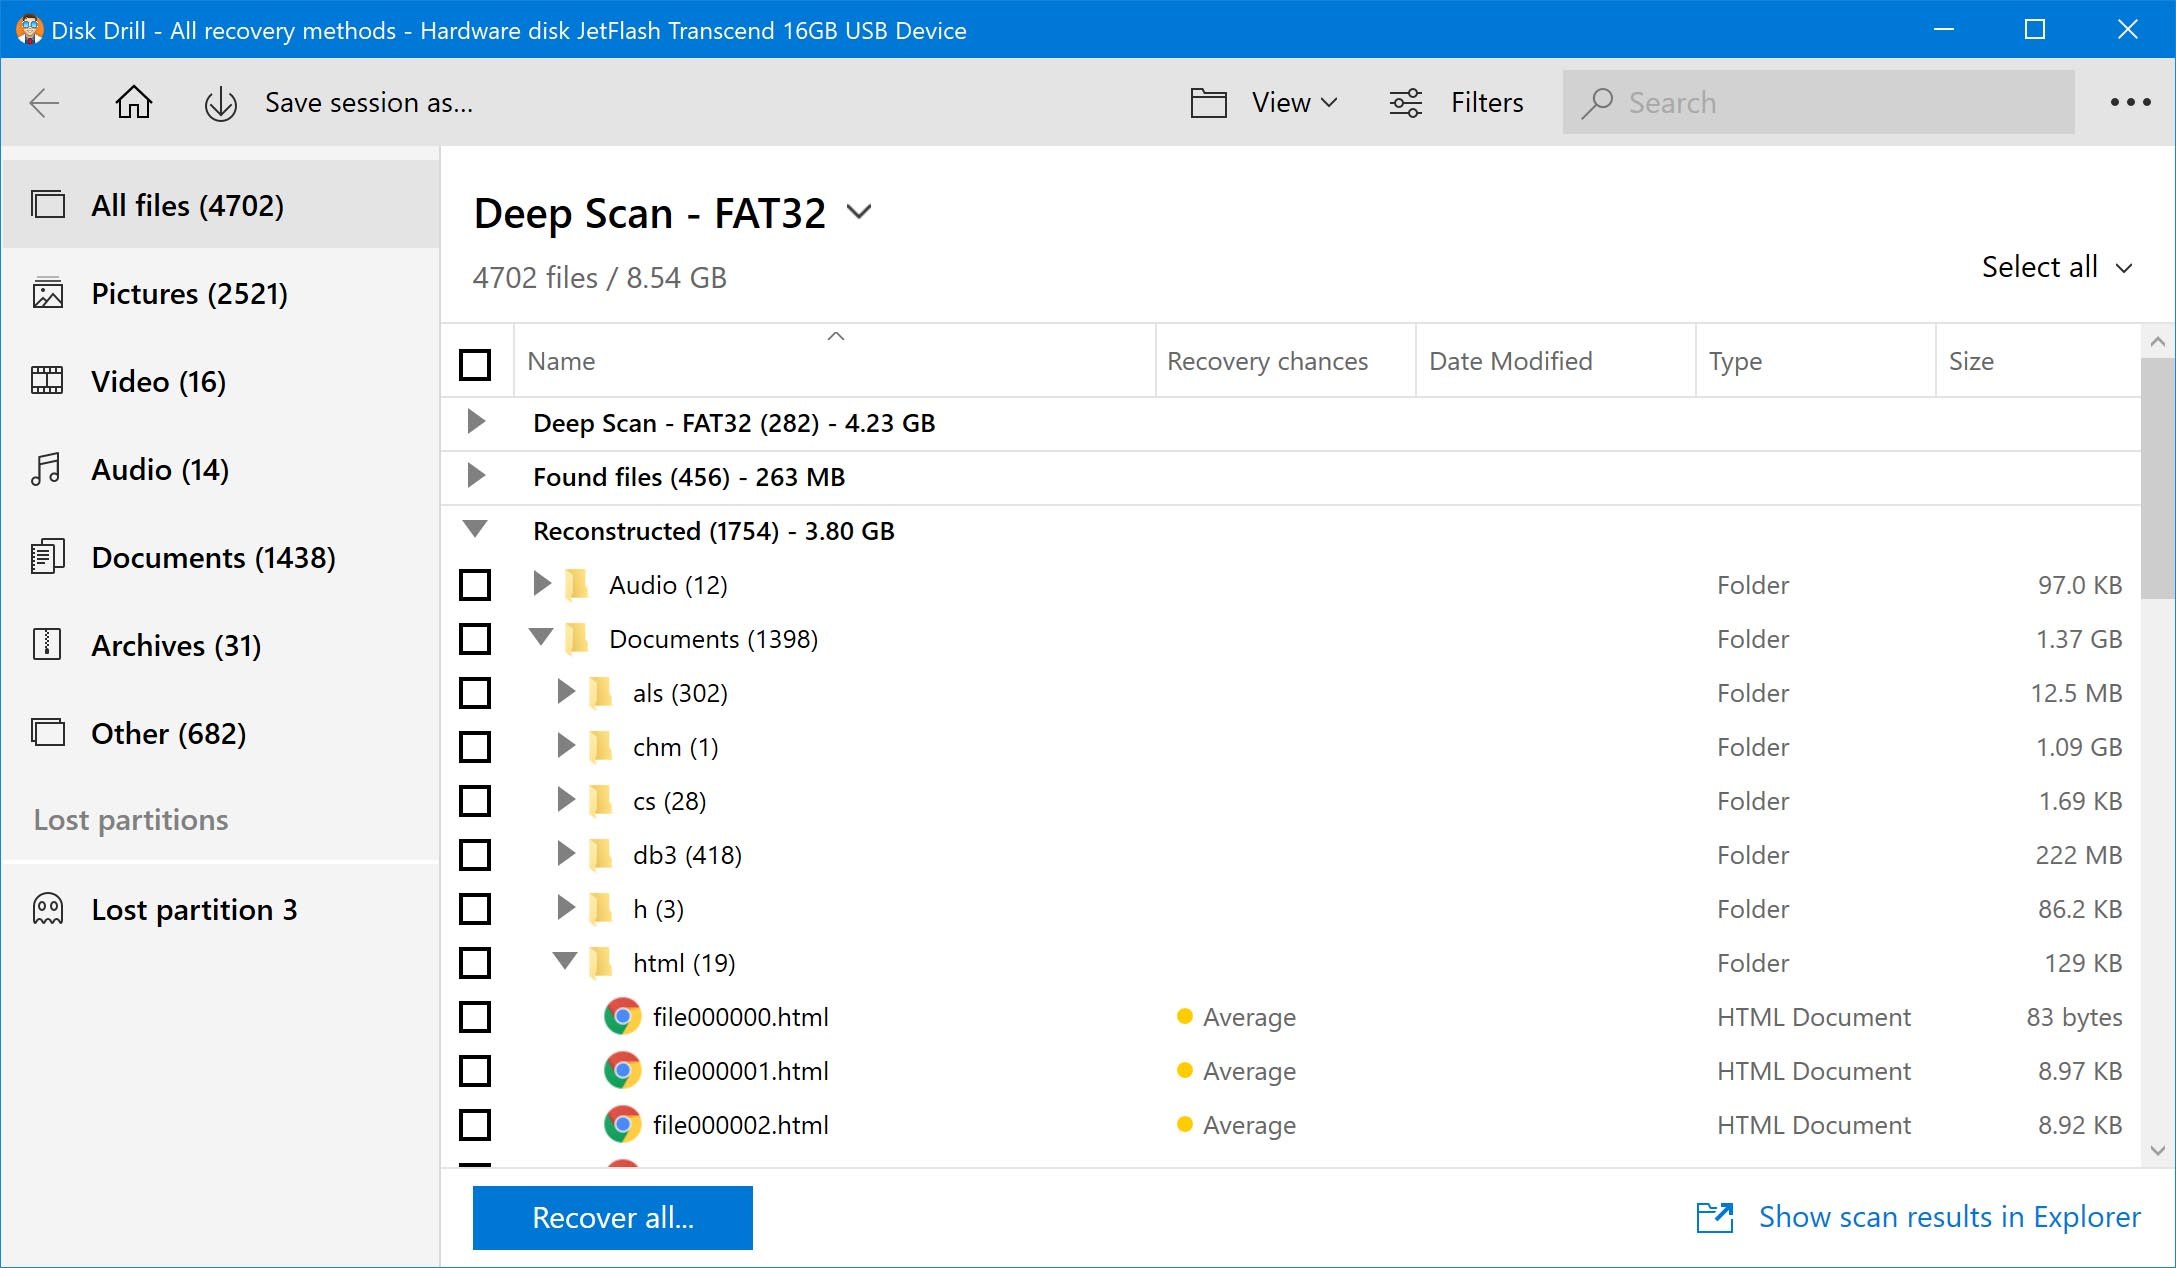 Open Disk Drill to begin the HFS disk recovery